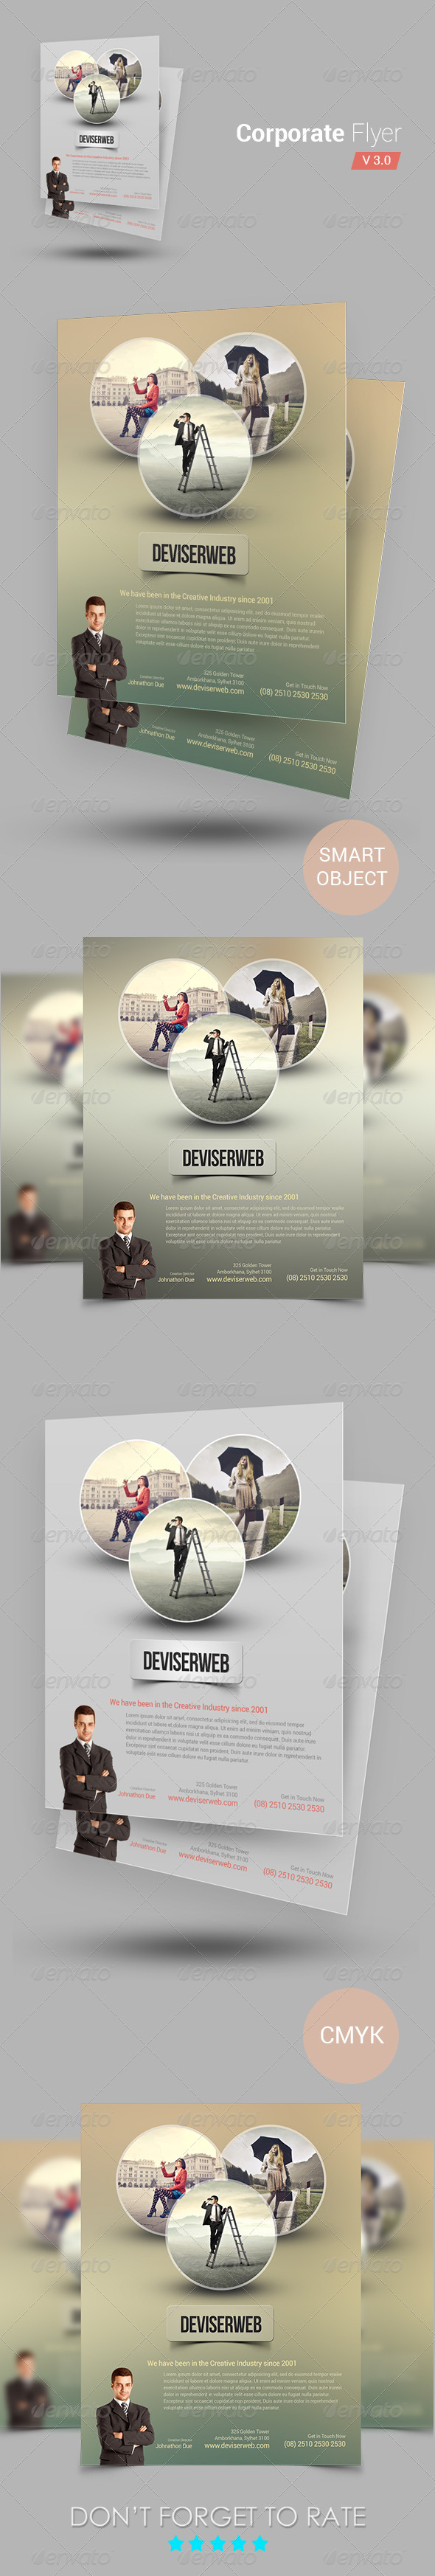 GraphicRiver Corporate Flyer Template 6576569